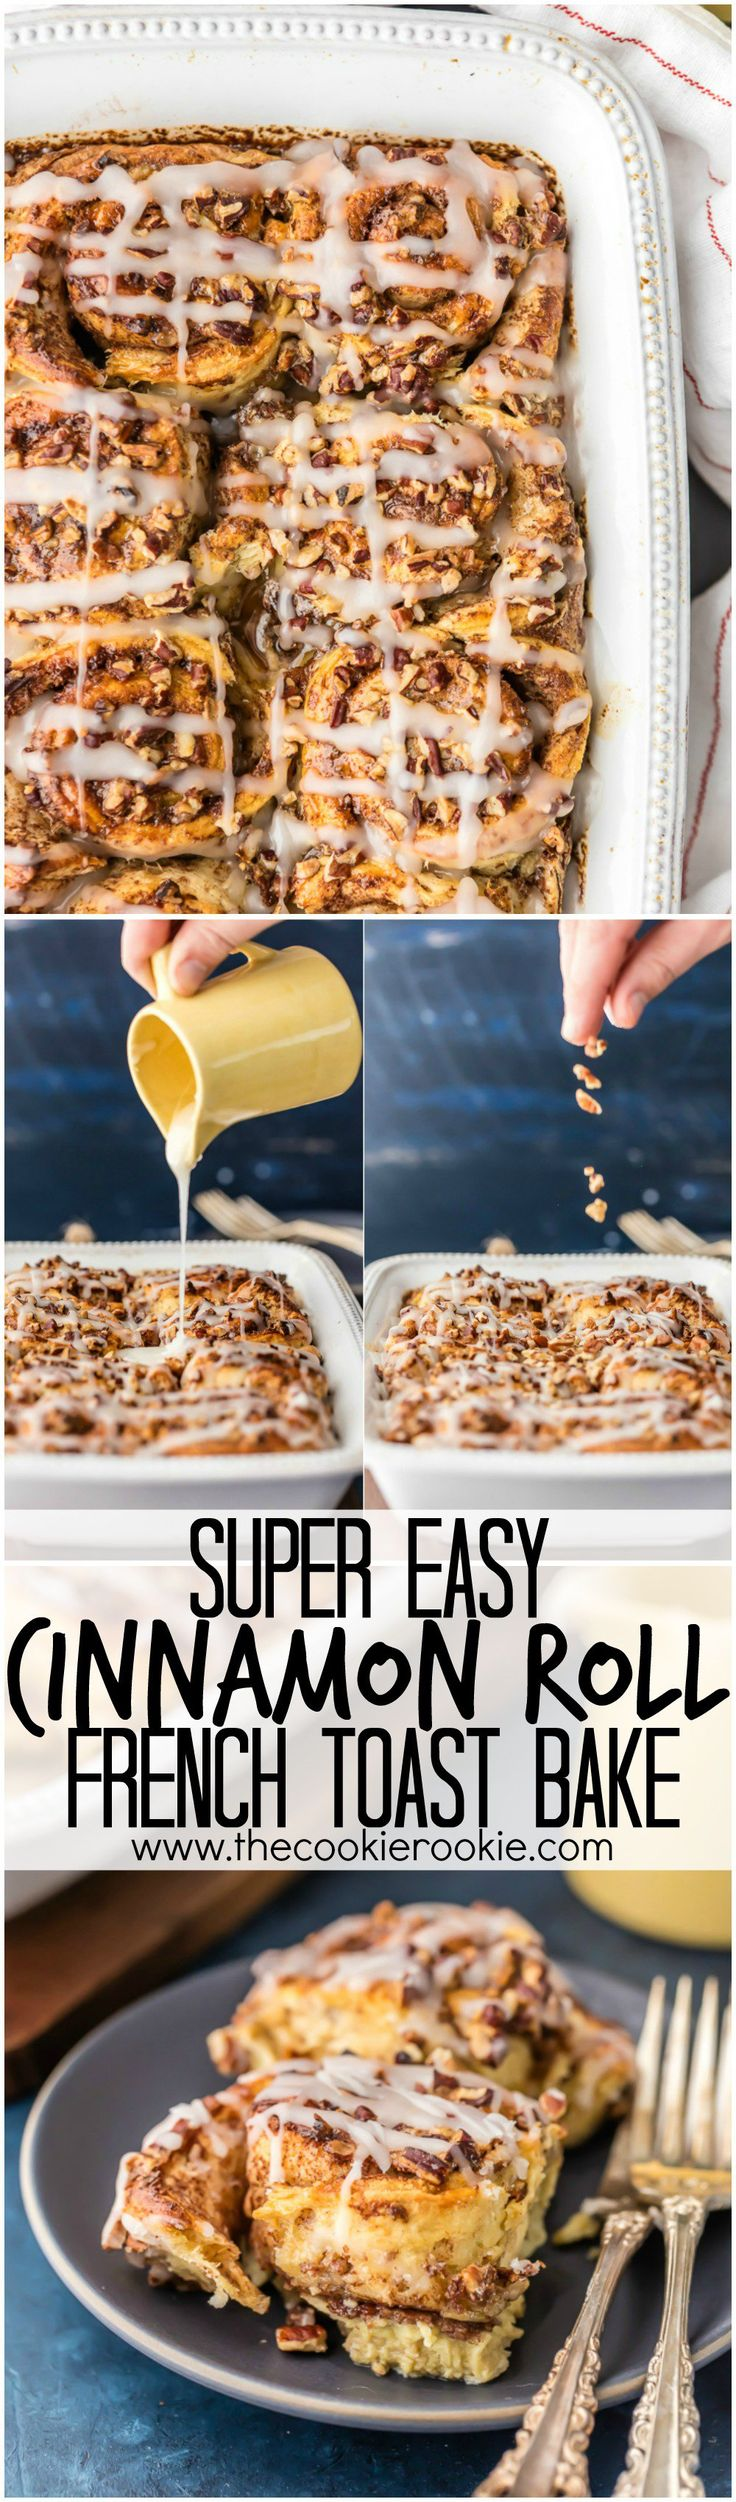 Cinnamon Roll French Toast Bake, SO EASY IT'S RIDICULOUS! Loaded with cinnamon rolls, cream, eggs, vanilla, and everything good. Perfect Christmas Morning breakfast or holiday brunch easy recipe!!